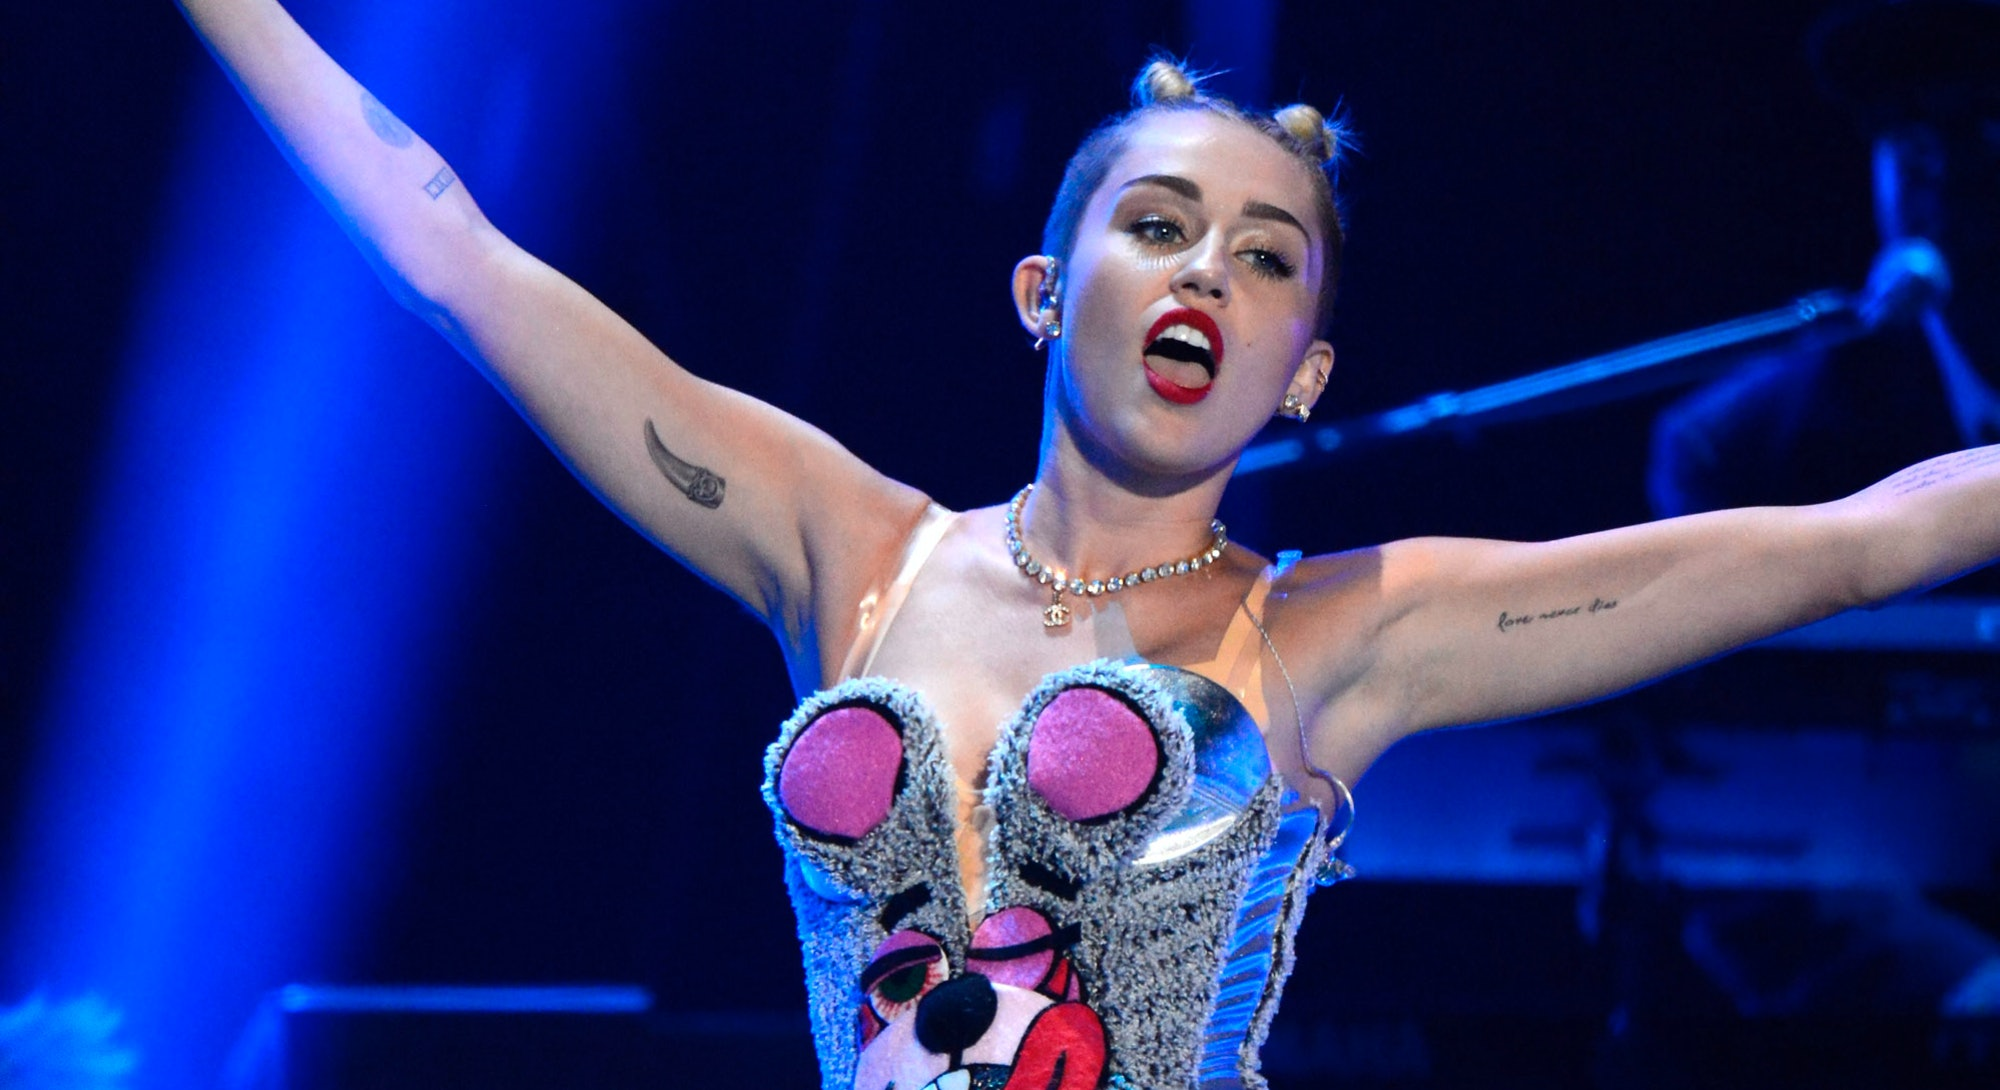 Miley Cyrus' 13 Most Jaw-Dropping & Empowering Live Performances. Photo via Kevin Mazur/WireImage/Getty Images